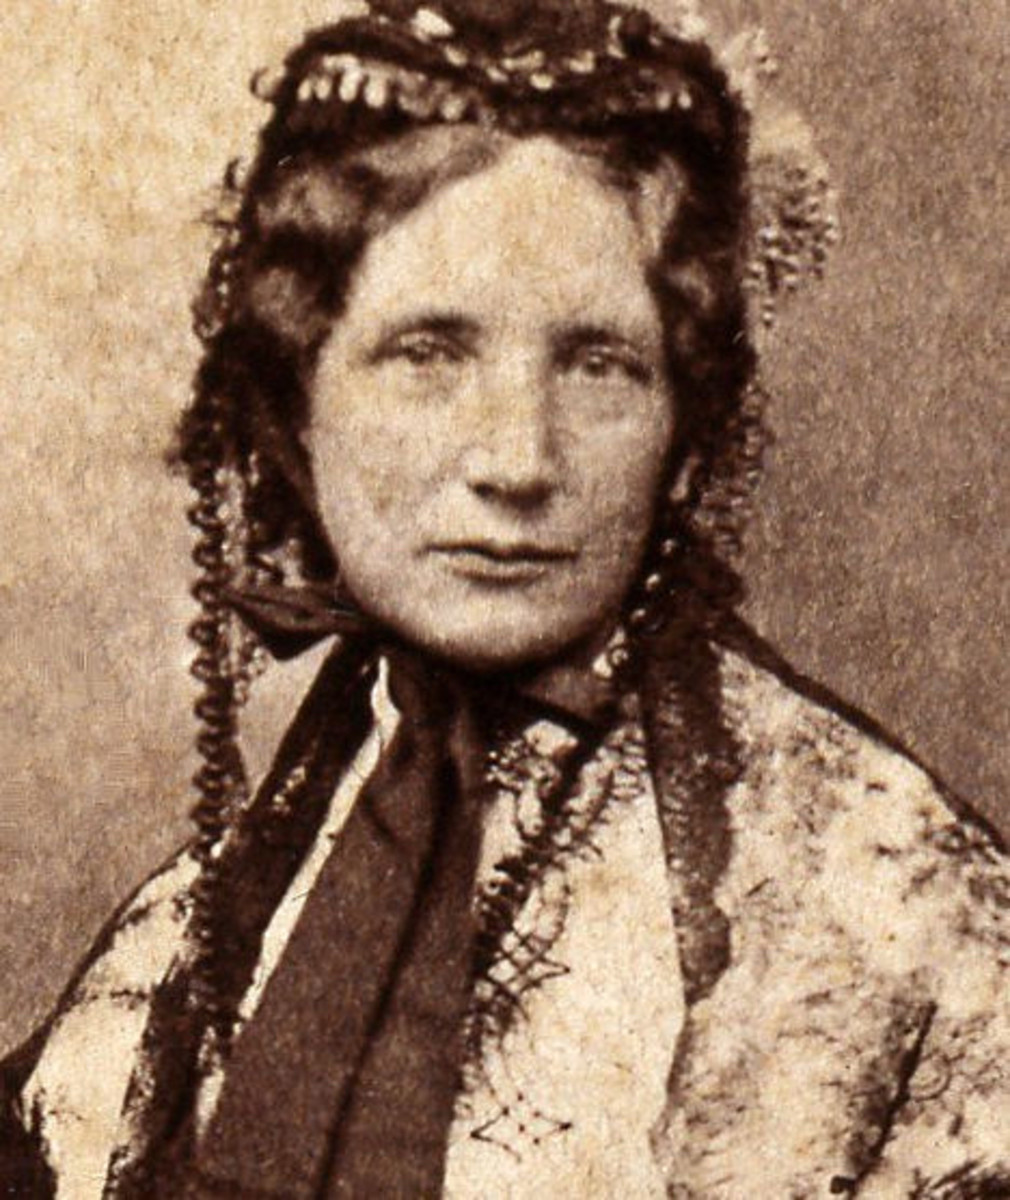 The motivation of harriet beecher stowe in writing uncle toms cabin